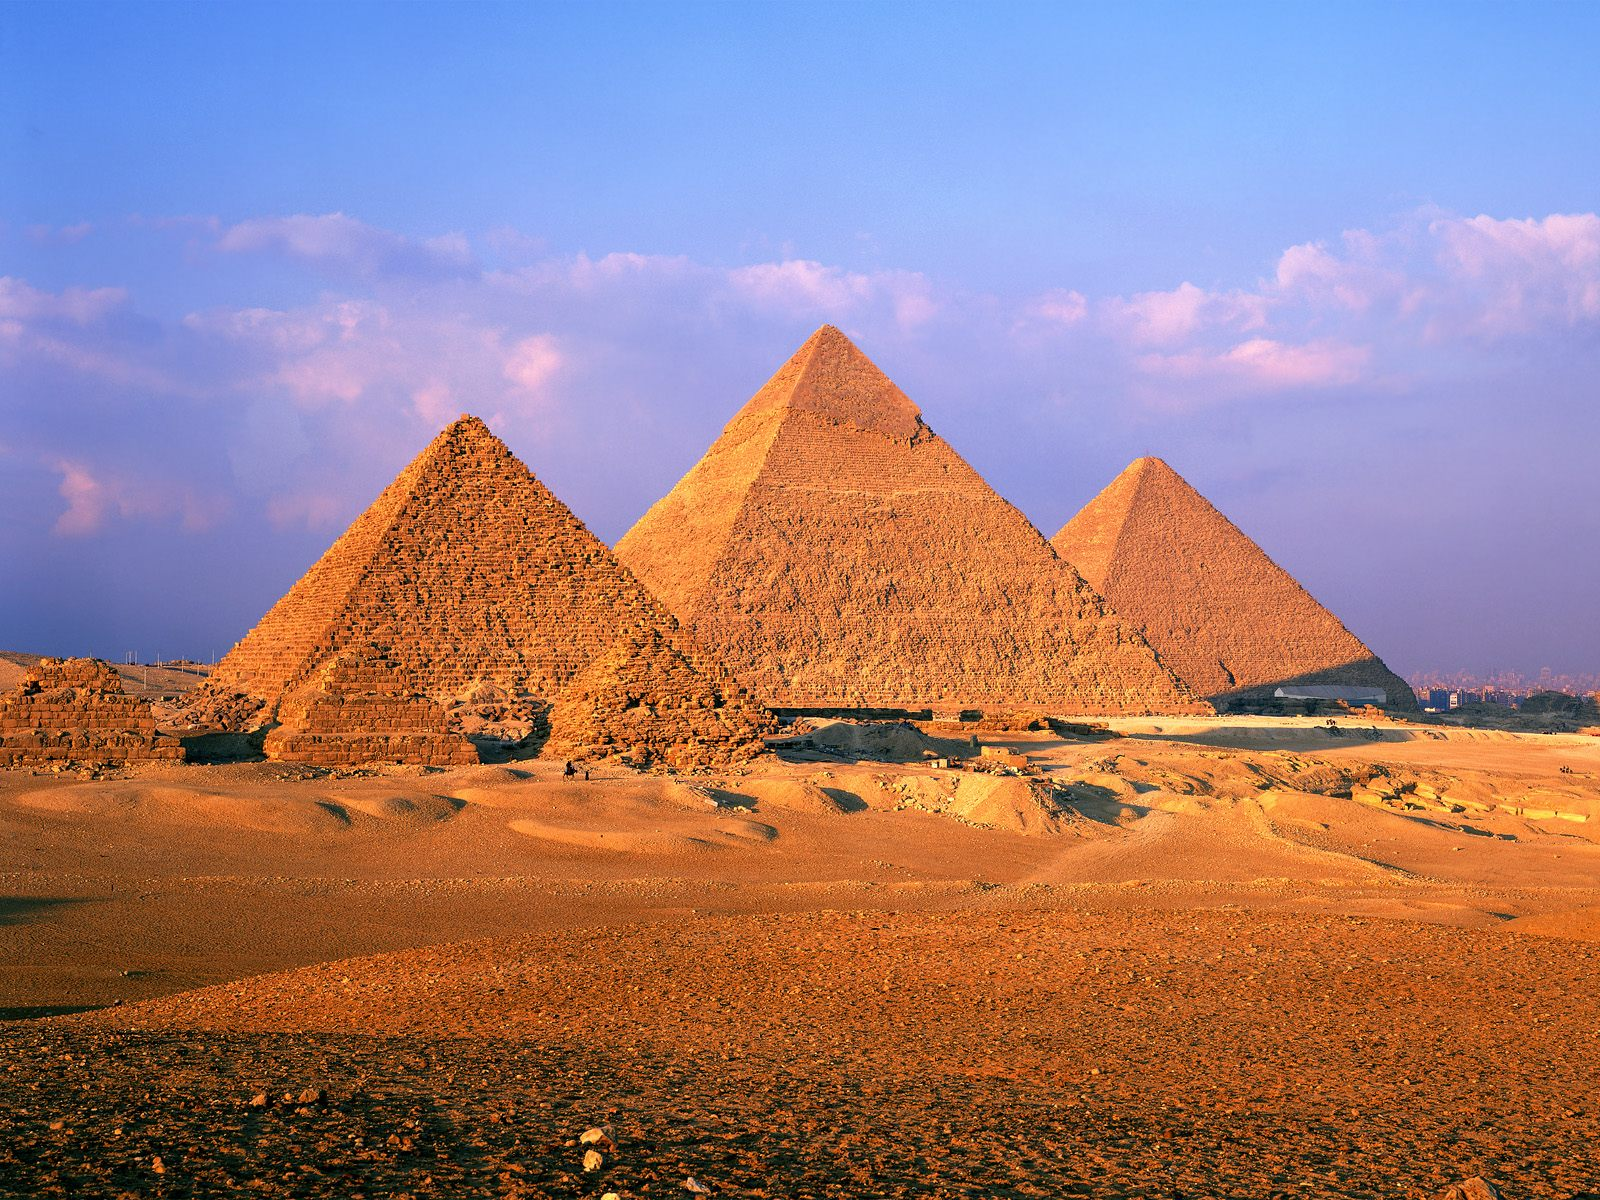 Pyramids of Giza Egypt wallpaper